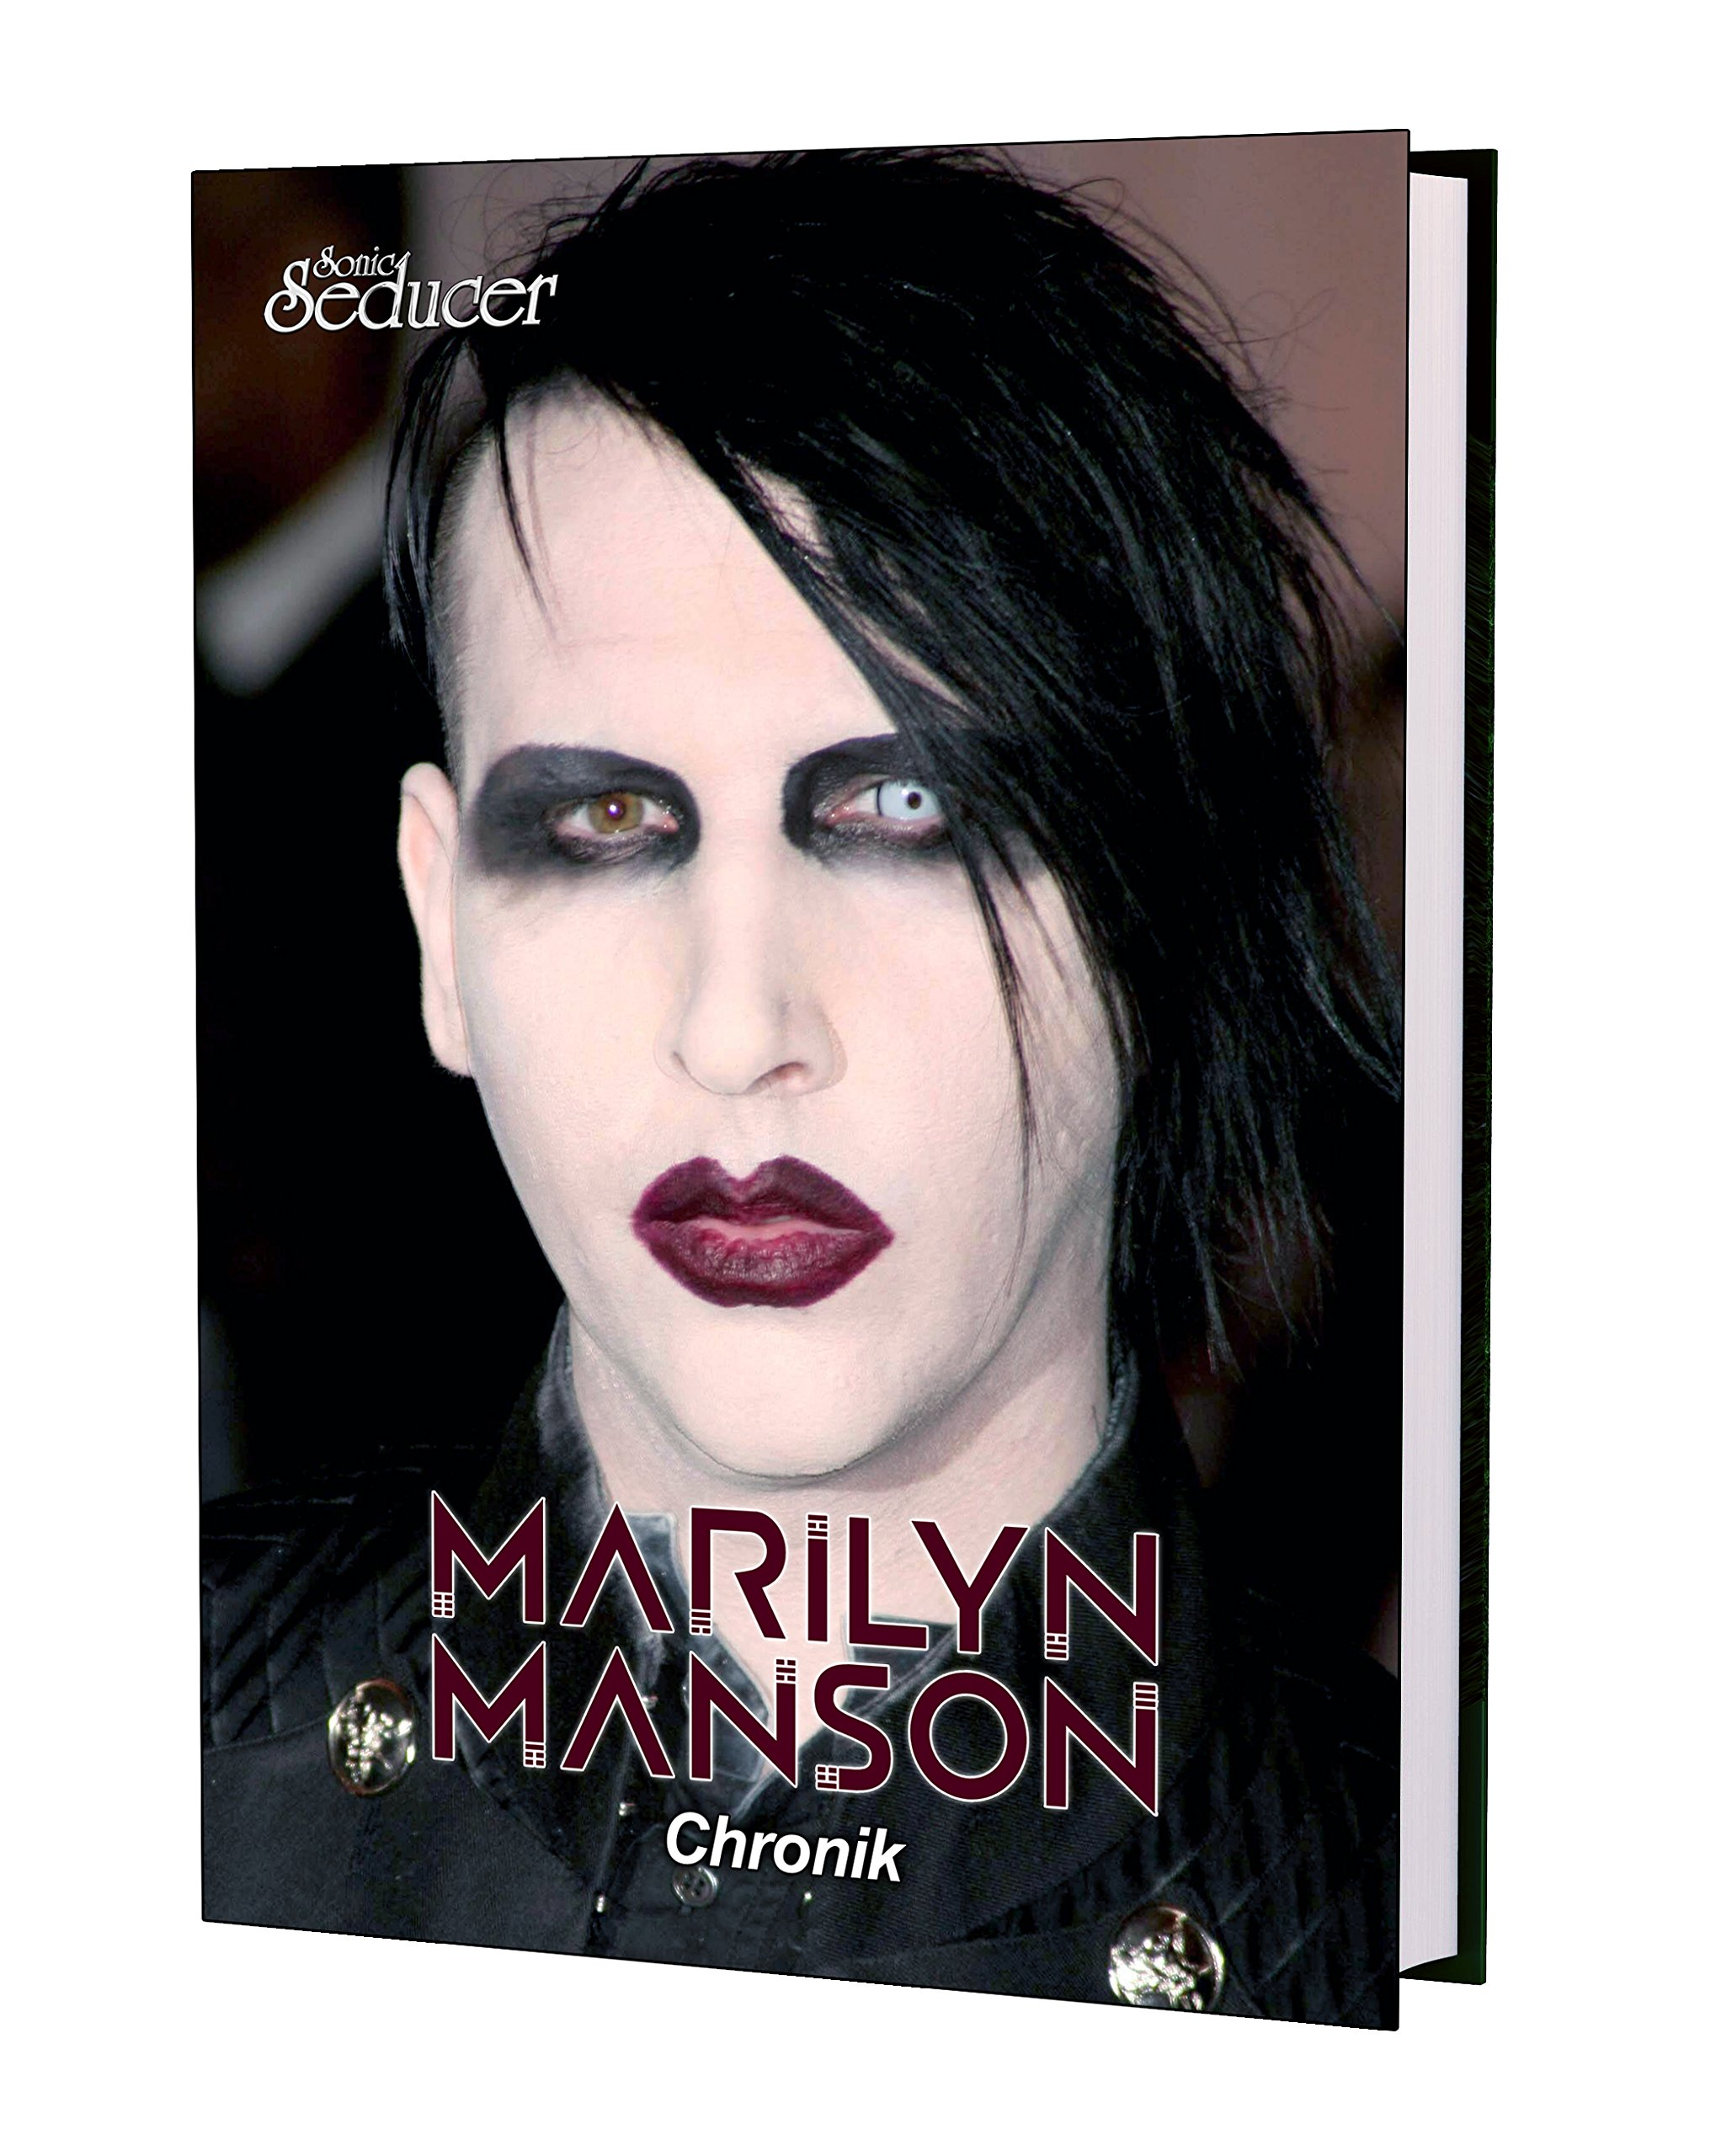 manson chronik